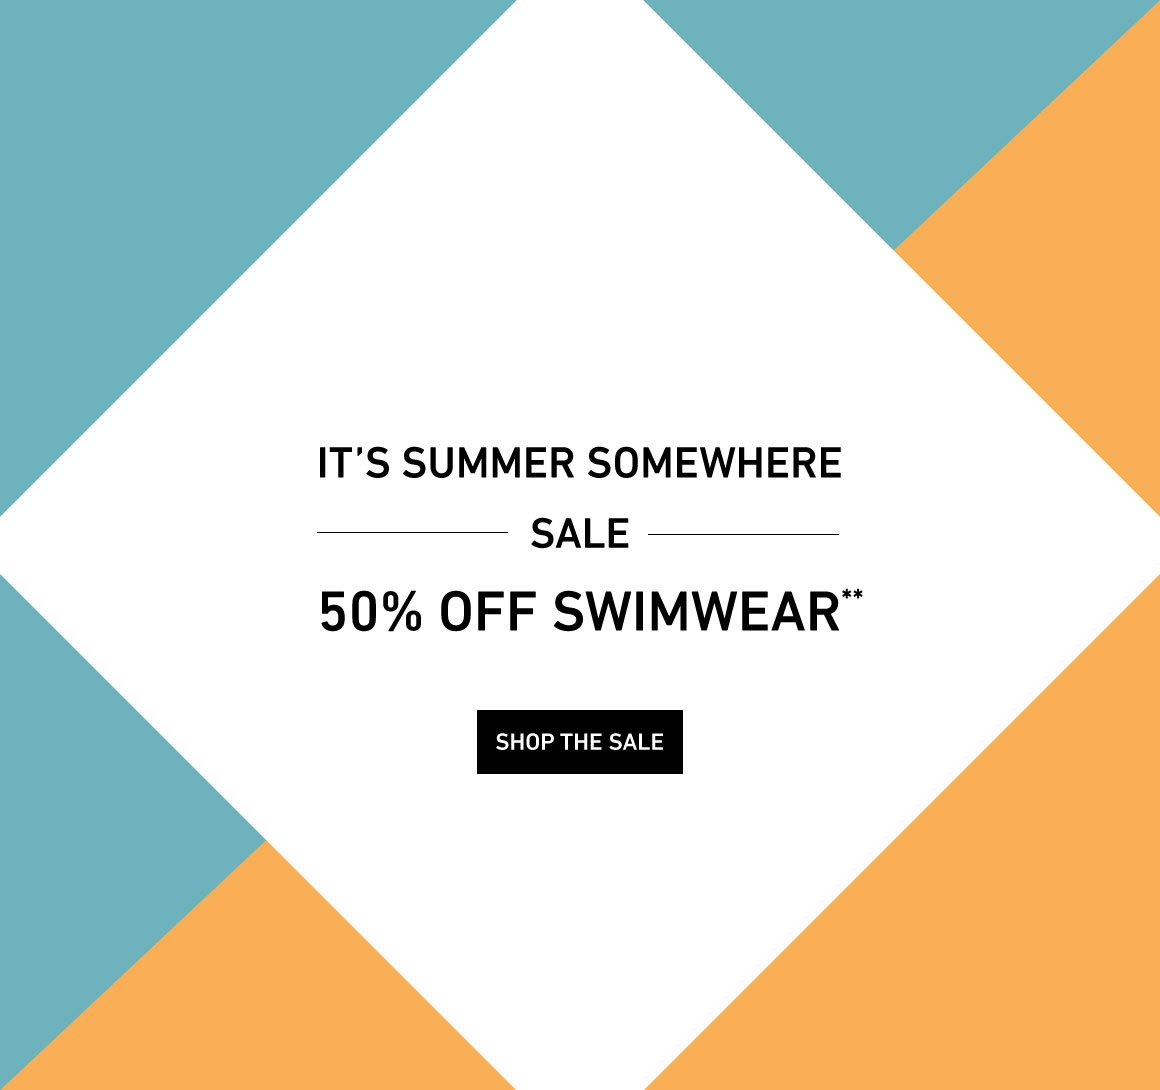 Get 50% Off Women's Swimwear!